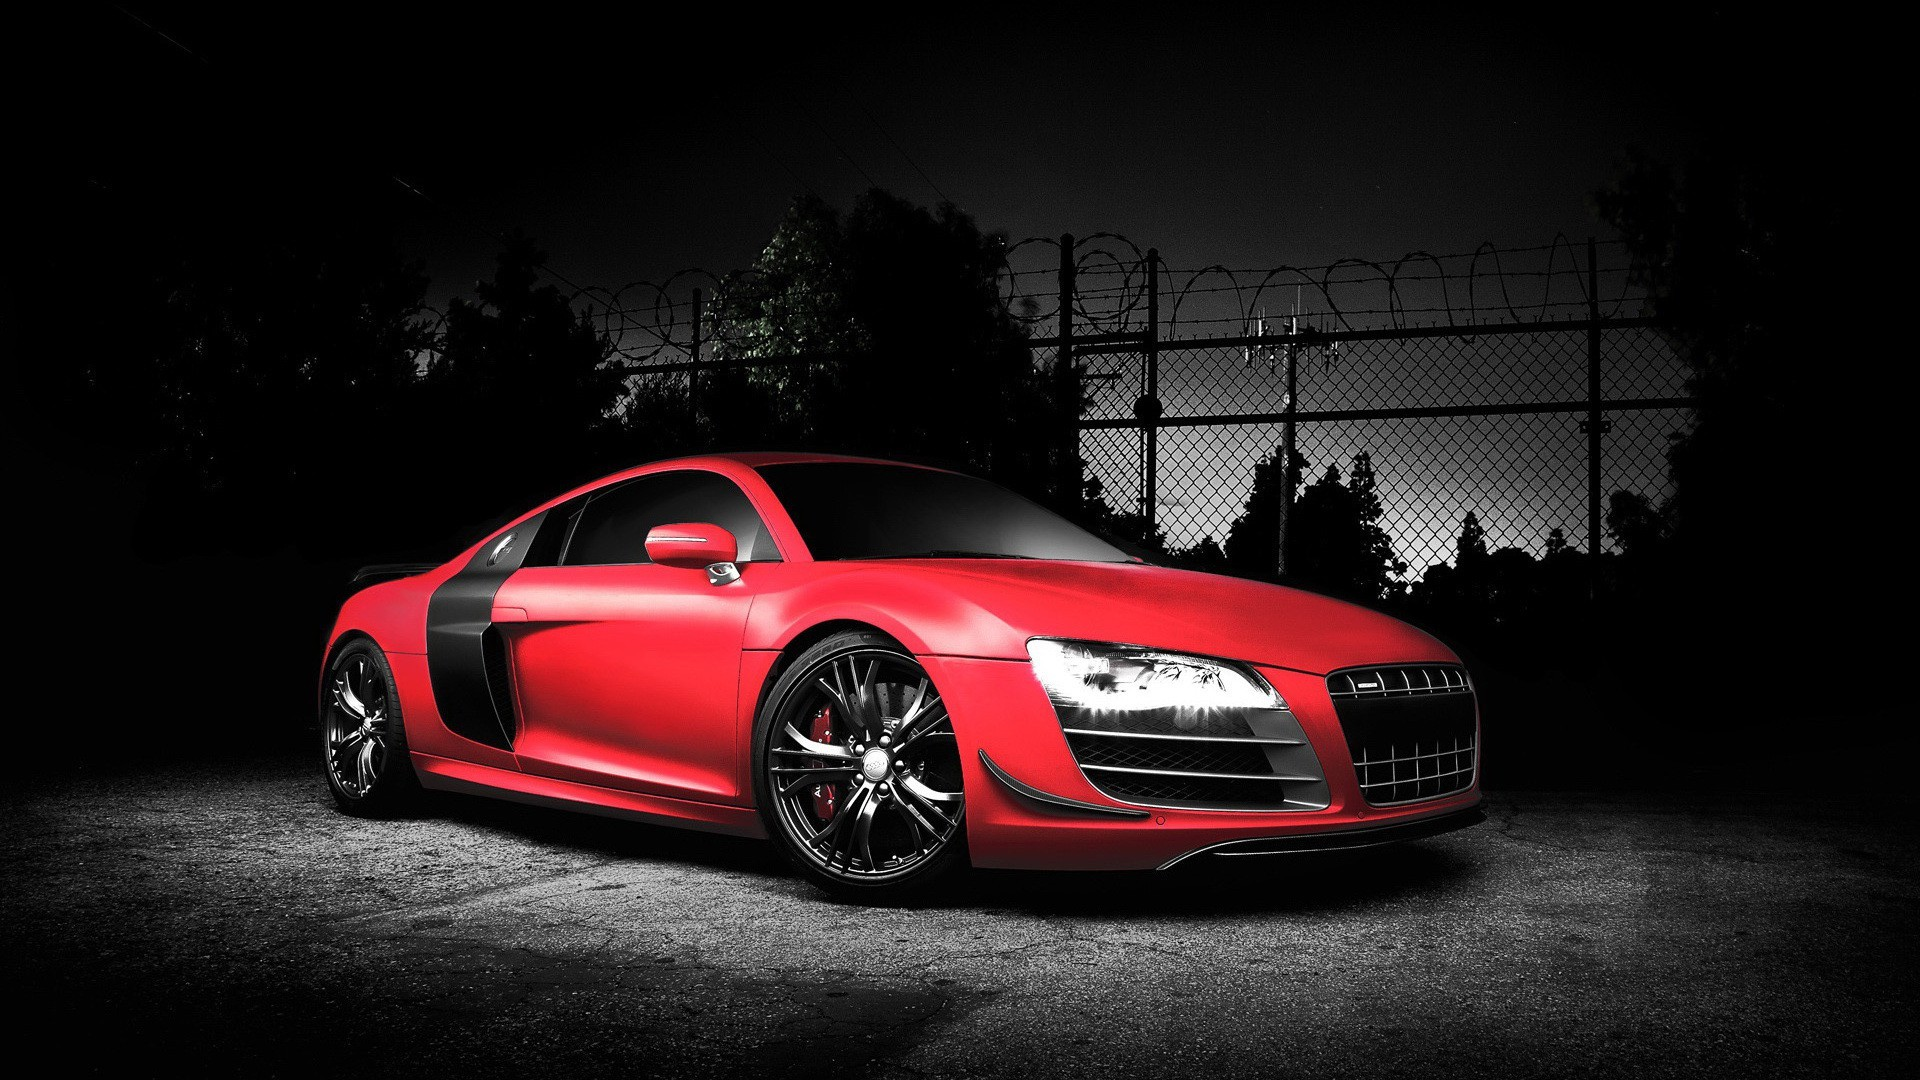 Cool Car Background Wallpapers Wallpapertag